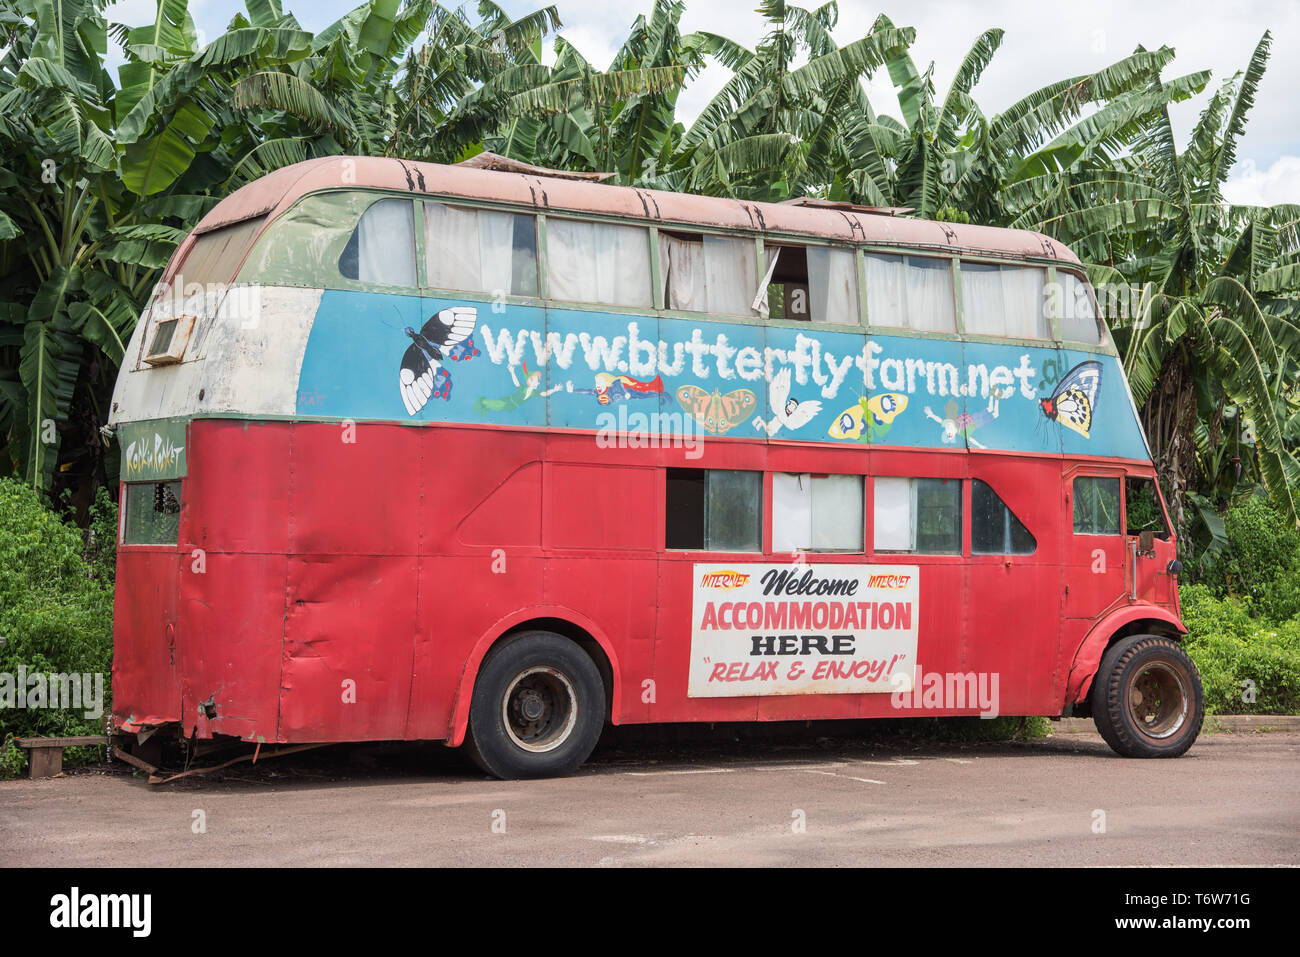 Batchelor, Northern Territory, Australia-February 9,2019: Vintage, colorful double-decker bus at the Butterfly Farm in Batchelor, Australia - Stock Image